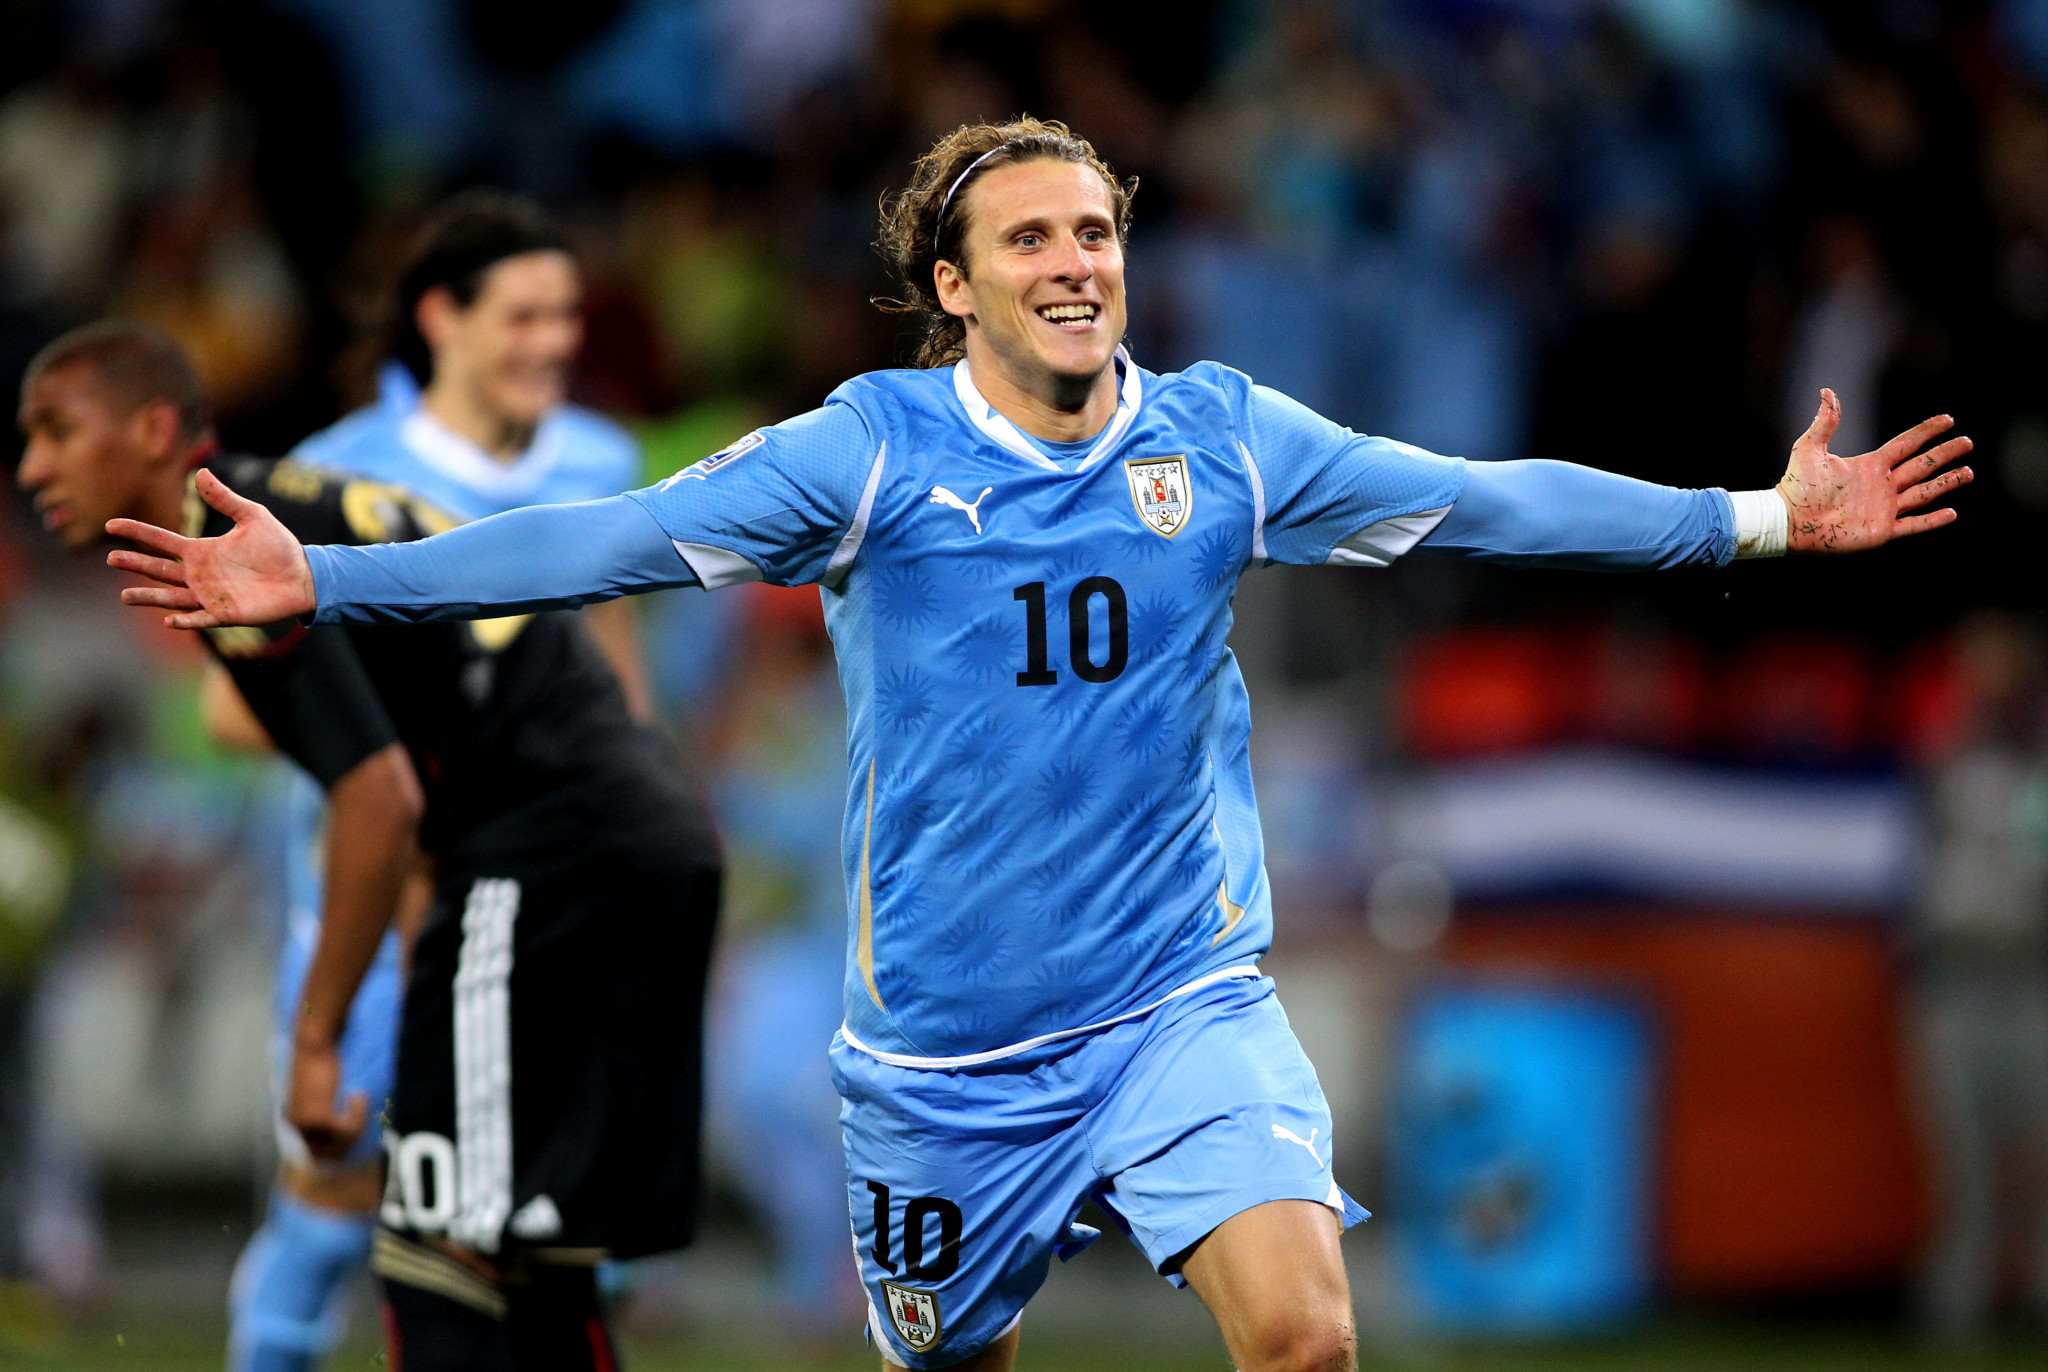 Uruguay star Forlán becomes teqball ambassador after gift of table